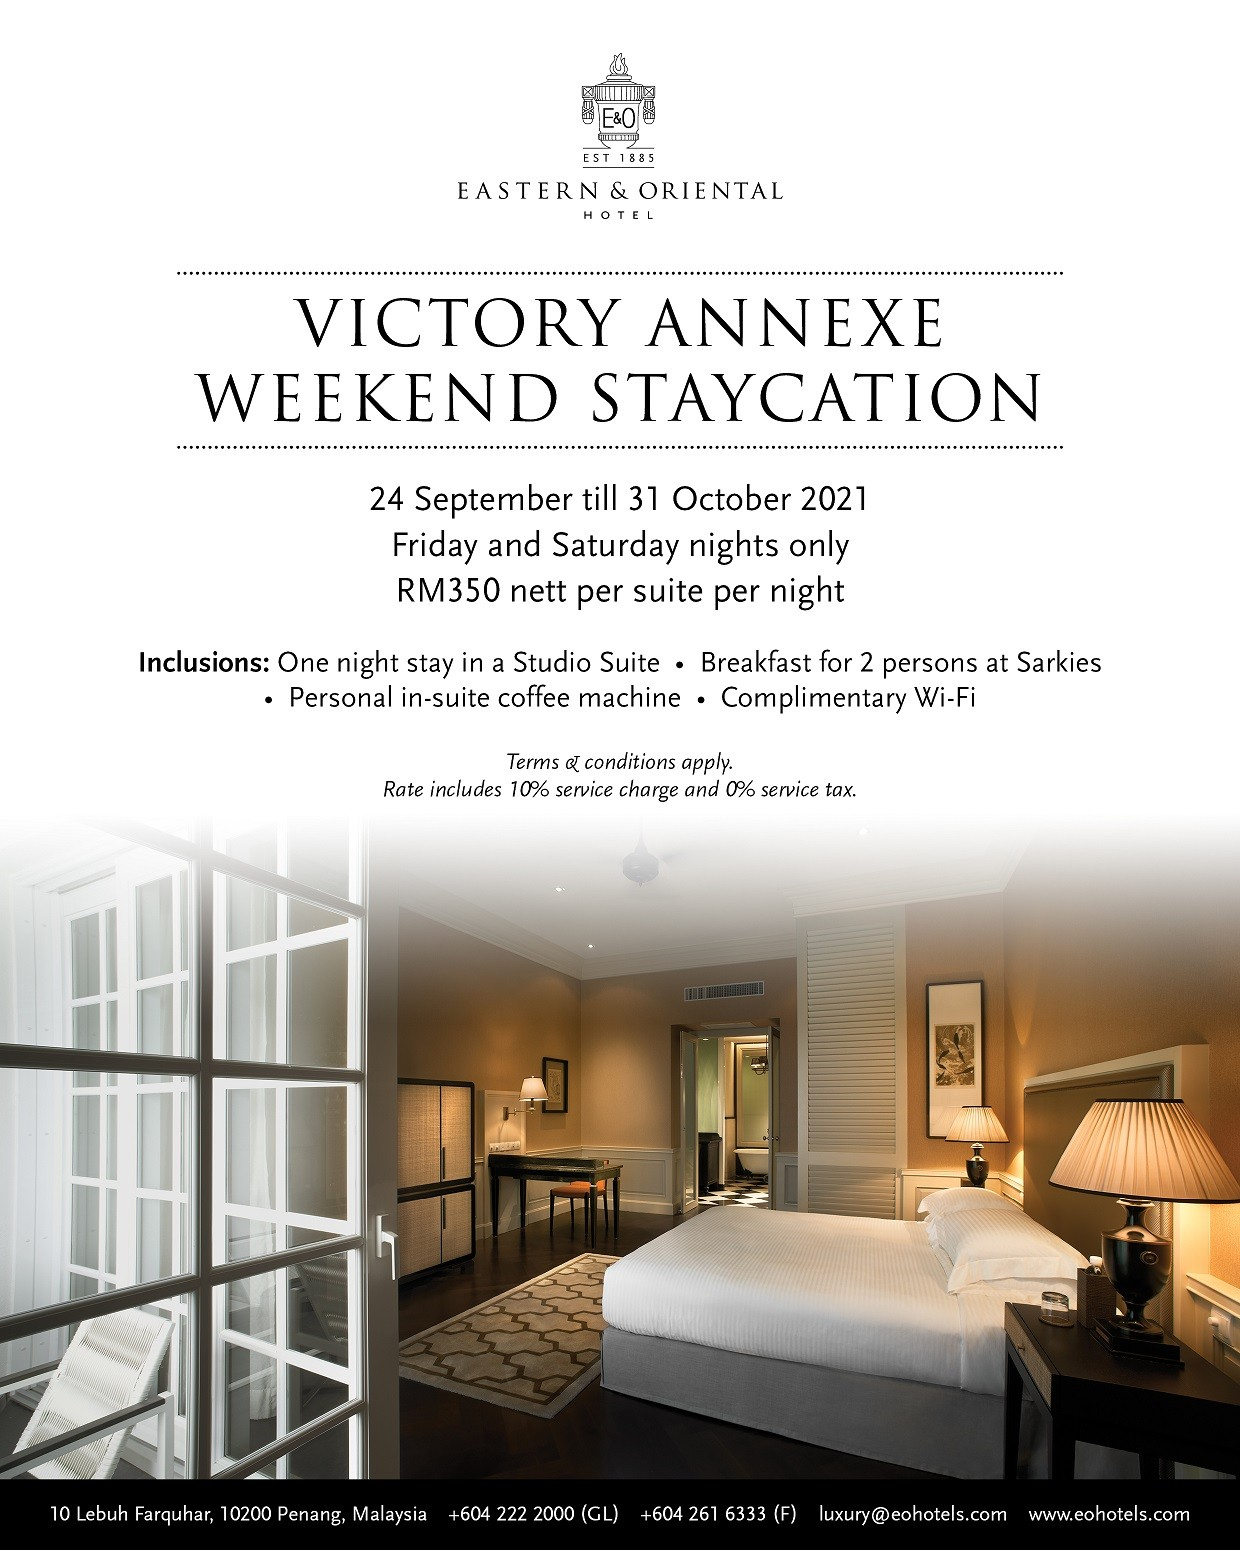 Victory Annexe weekend staycation by E&O Hotel